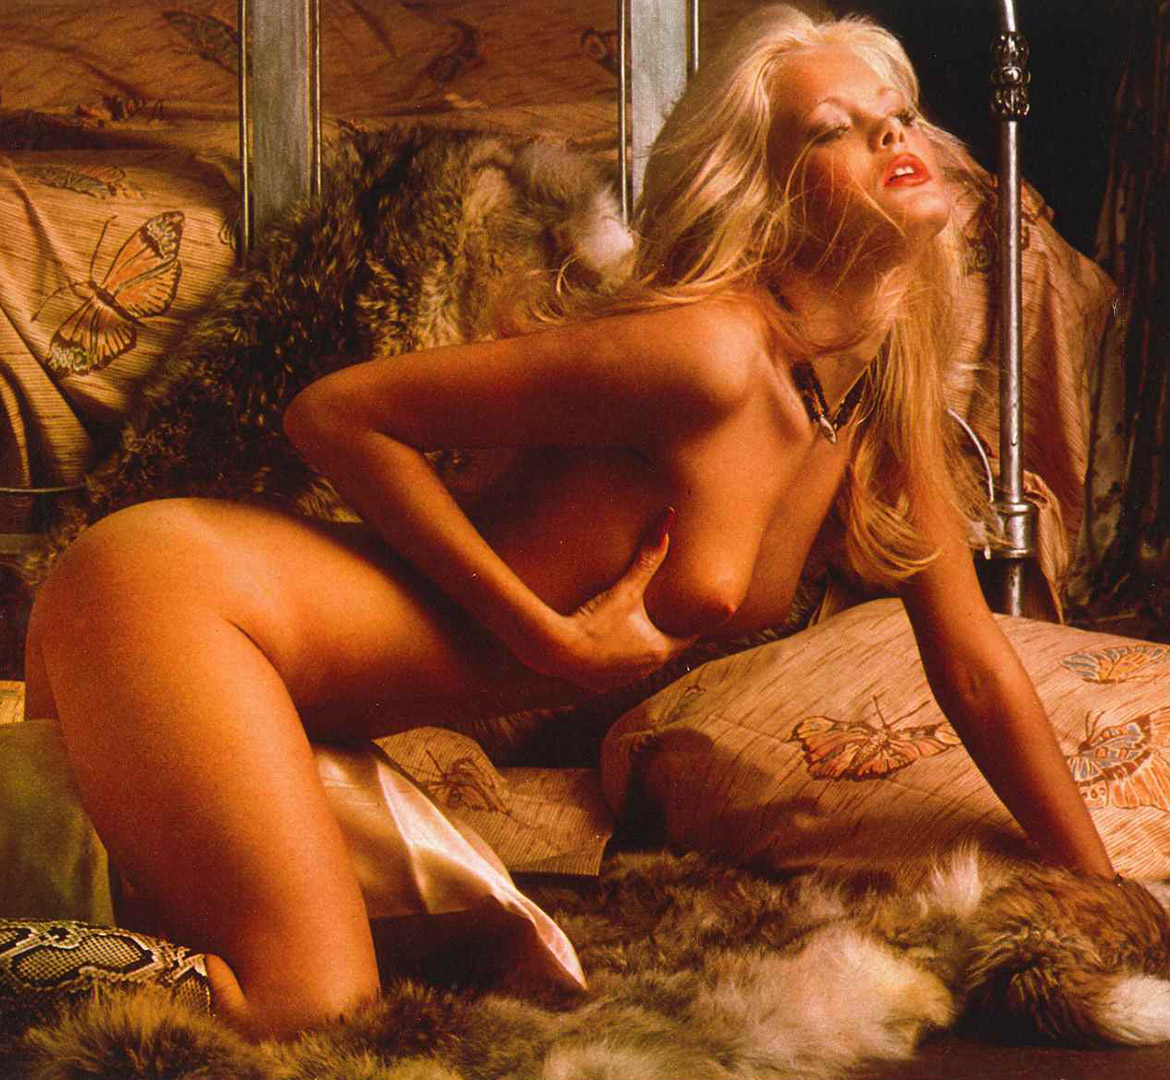 Patricia Margot McClain, Miss May 1976, Playboy Playmate